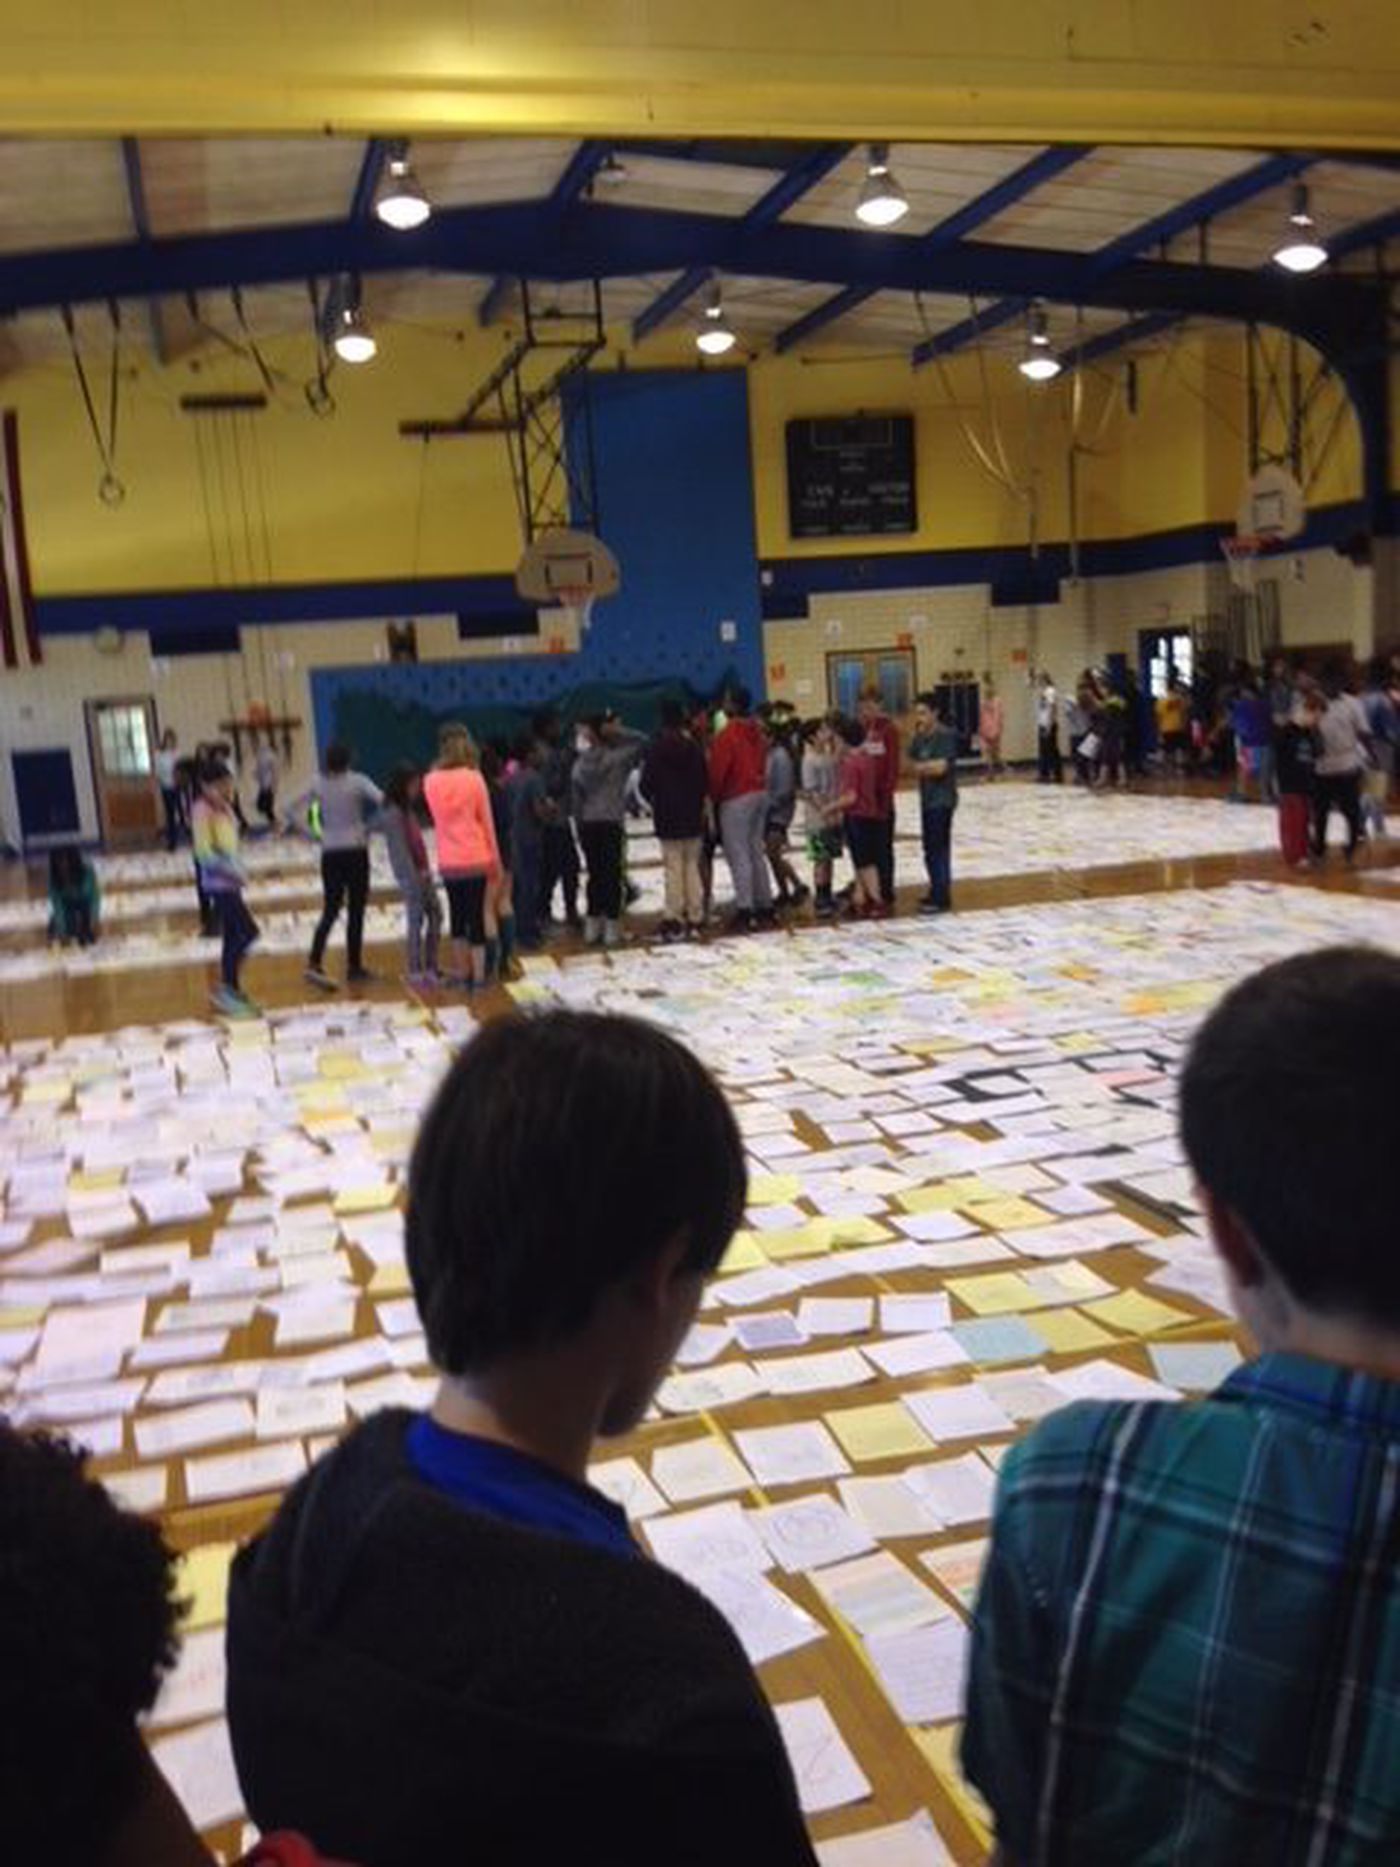 Elkins Park School teacher Lise Marlowe's students spread out on the gym floor the stick figure drawings they made to represent Holocaust victims. After 20 years, her classes are only up to 1.3 million victims.